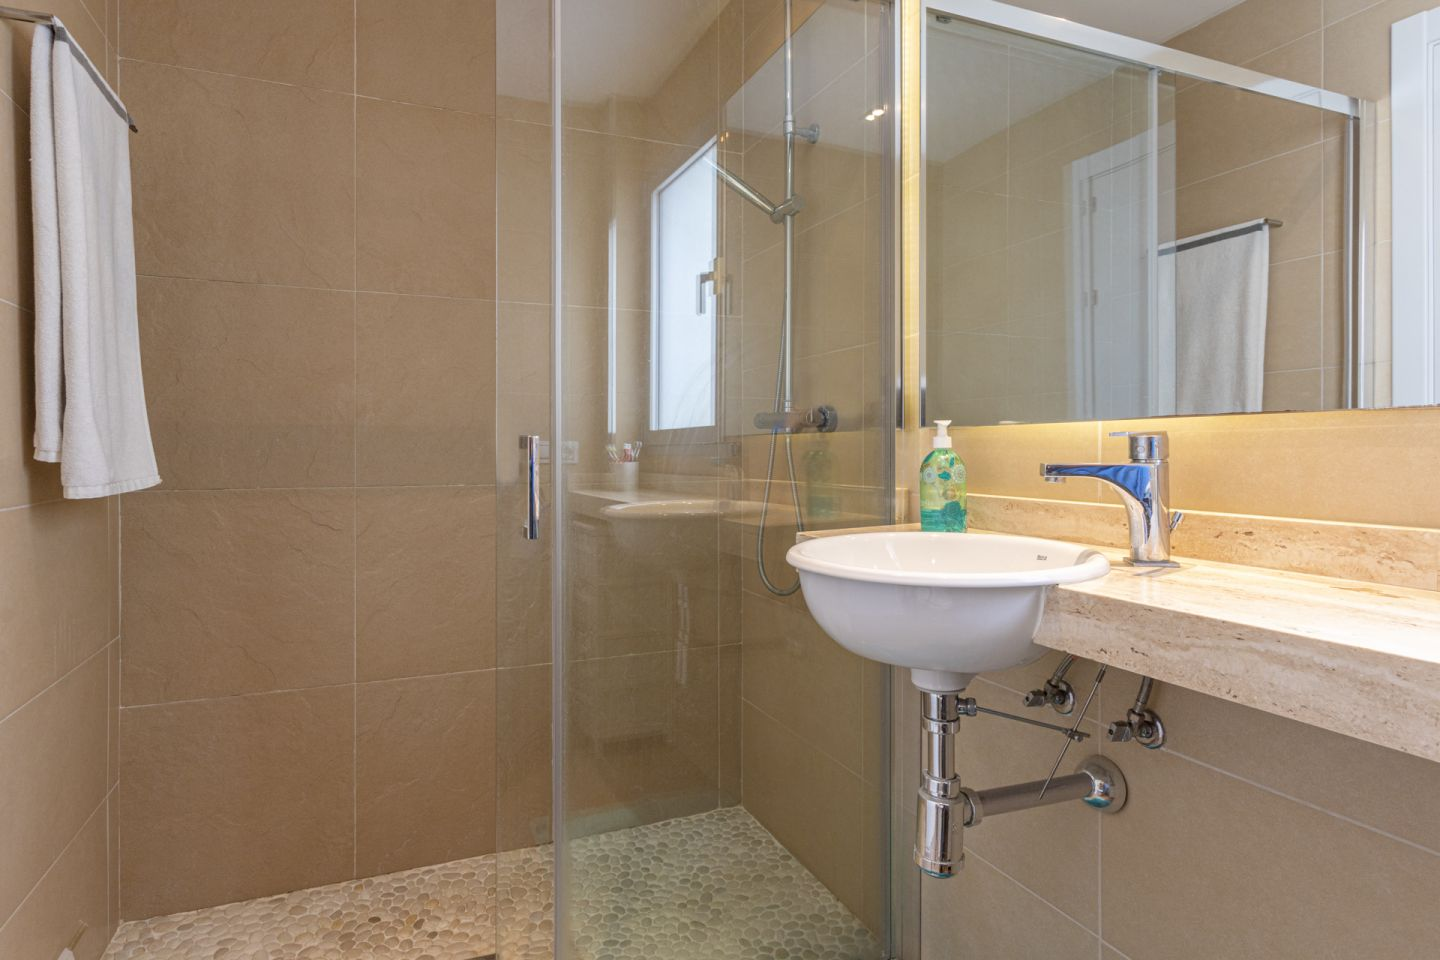 3 Bed Apartment for sale in Puerto Pollensa 13